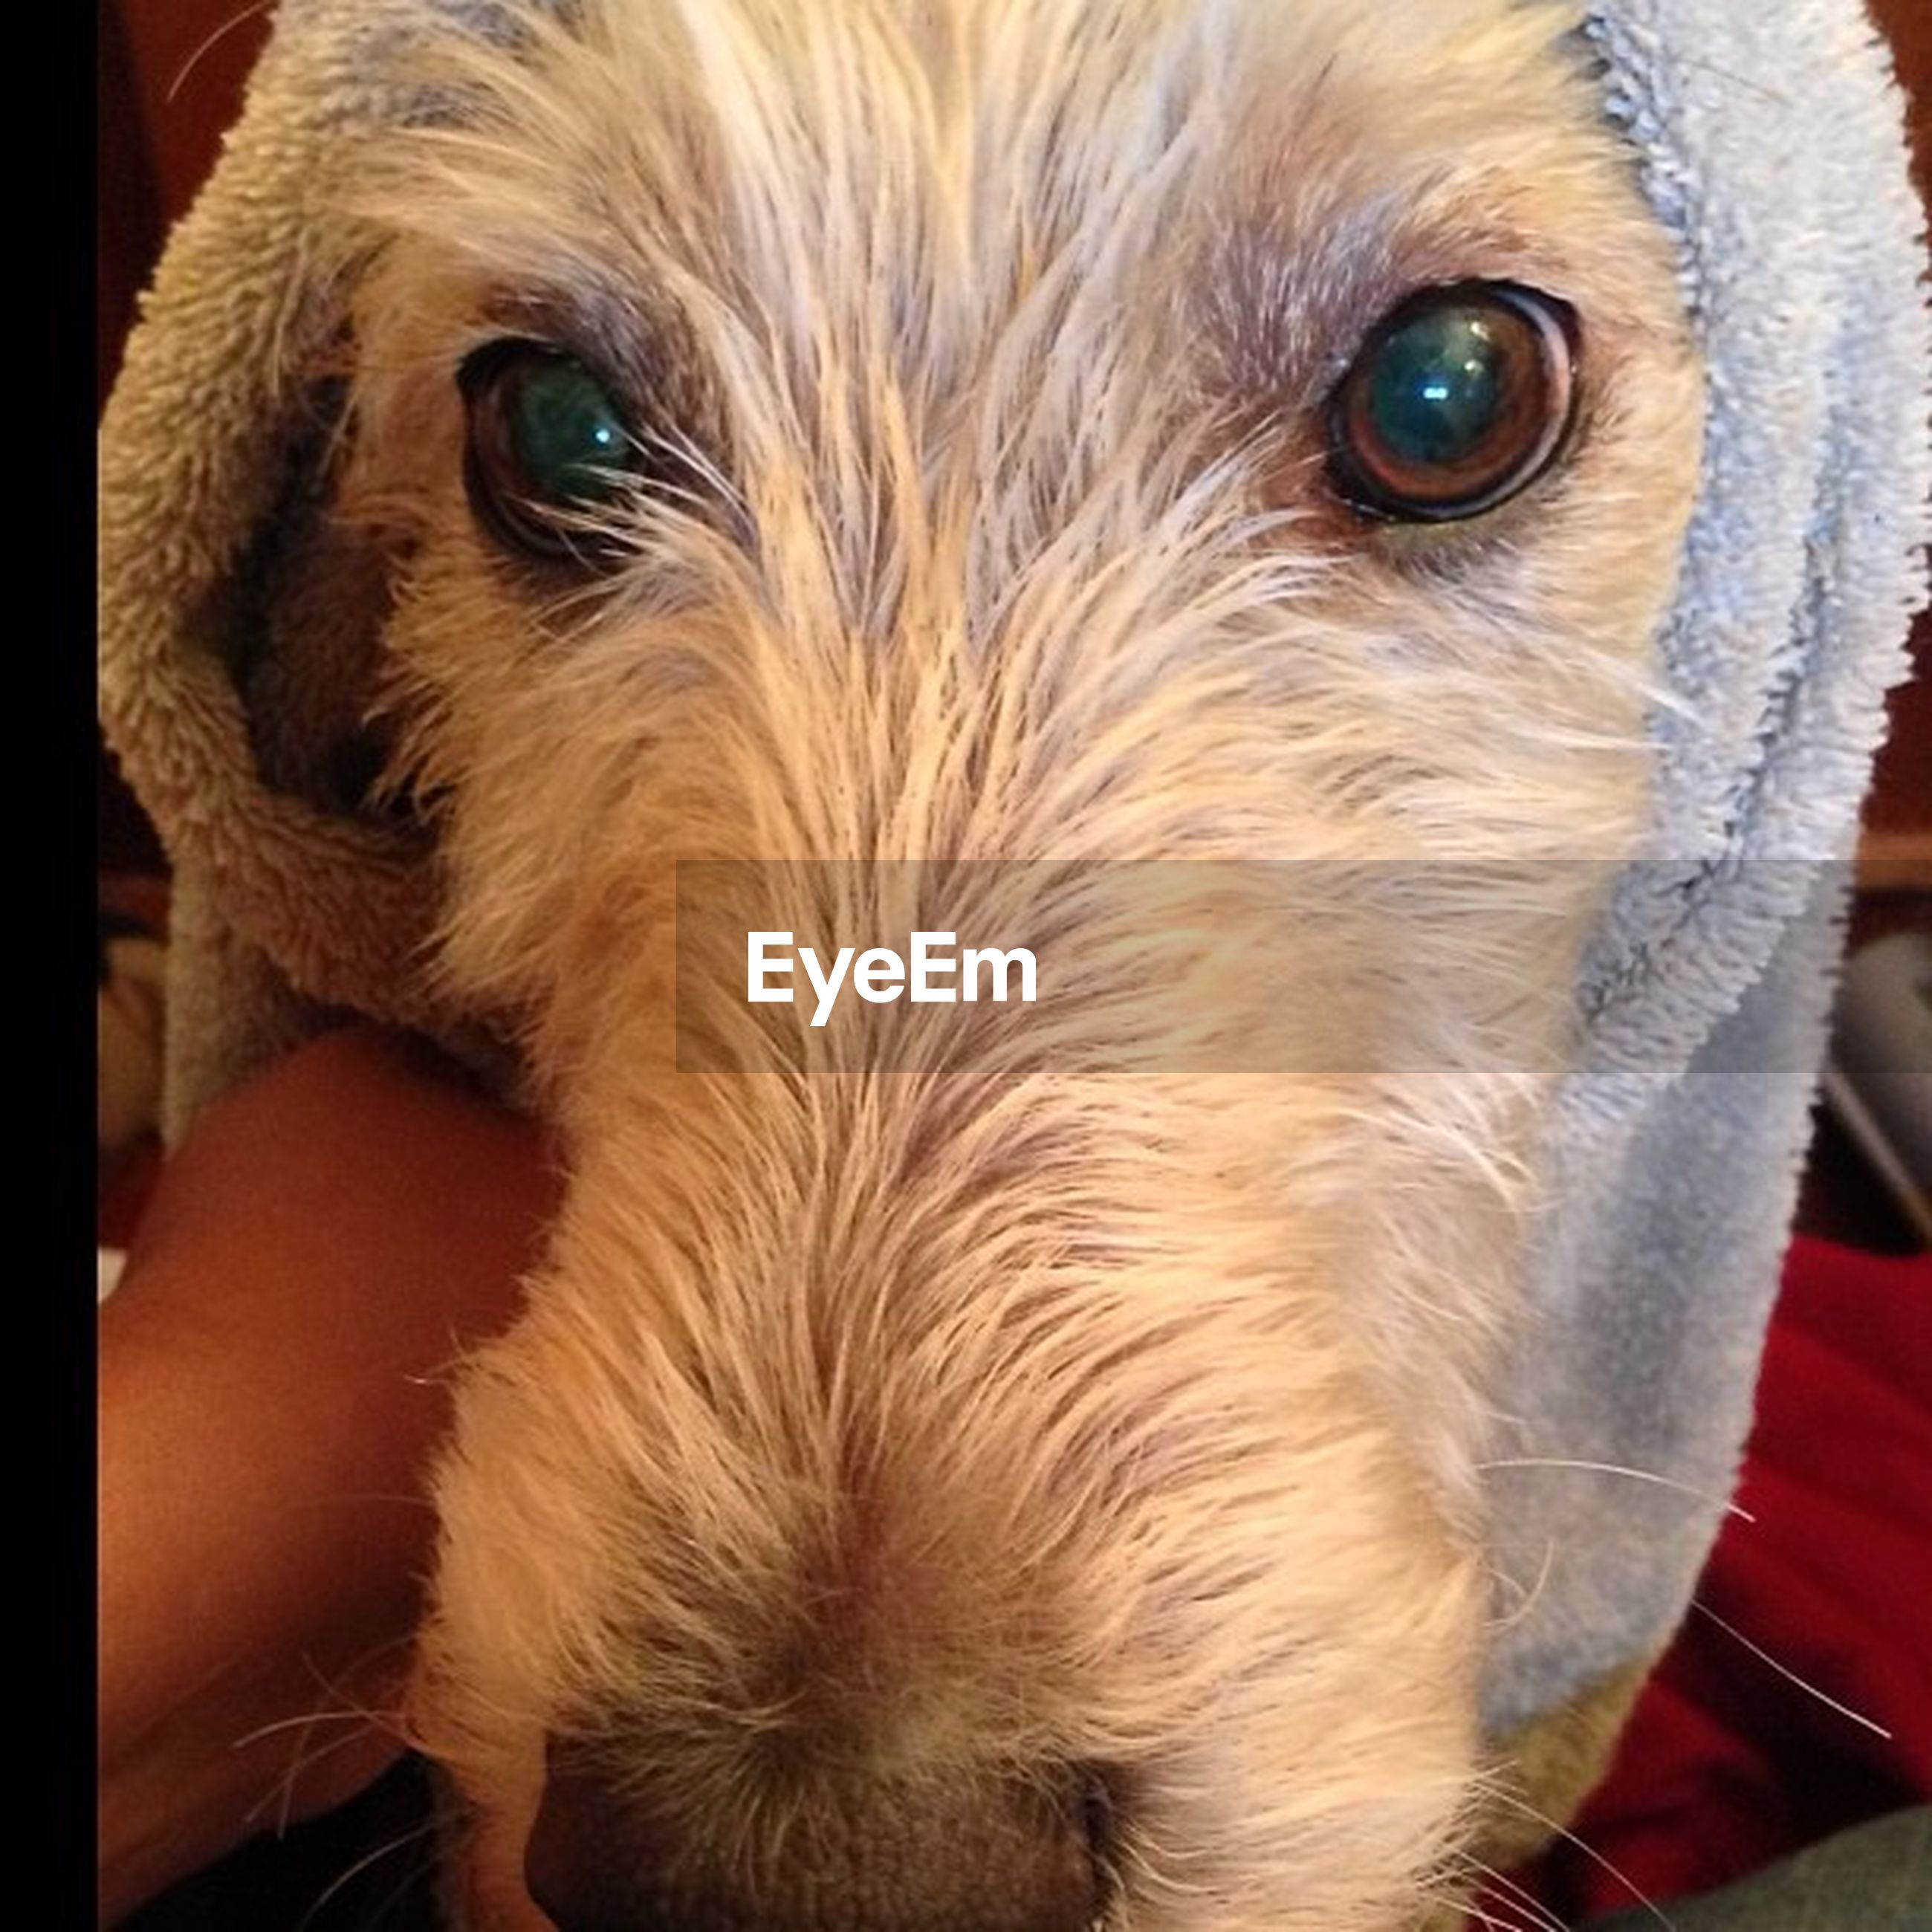 pets, one animal, animal themes, domestic animals, dog, indoors, animal head, close-up, mammal, portrait, animal body part, looking at camera, snout, animal eye, cute, animal hair, brown, no people, zoology